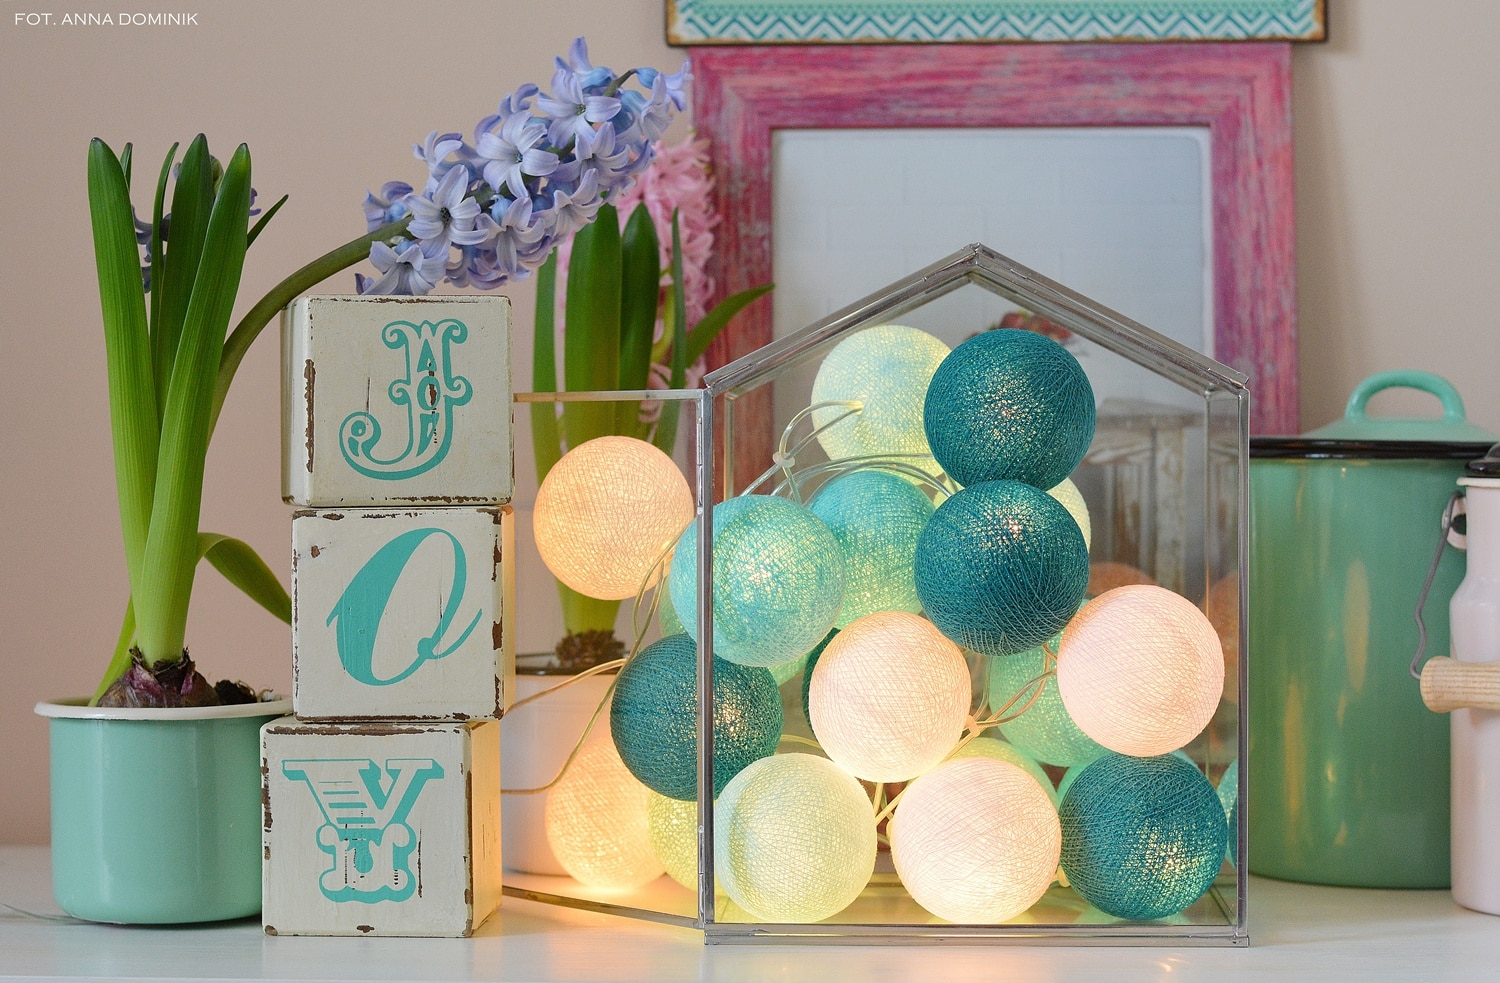 Girlandy Cotton Ball Lights